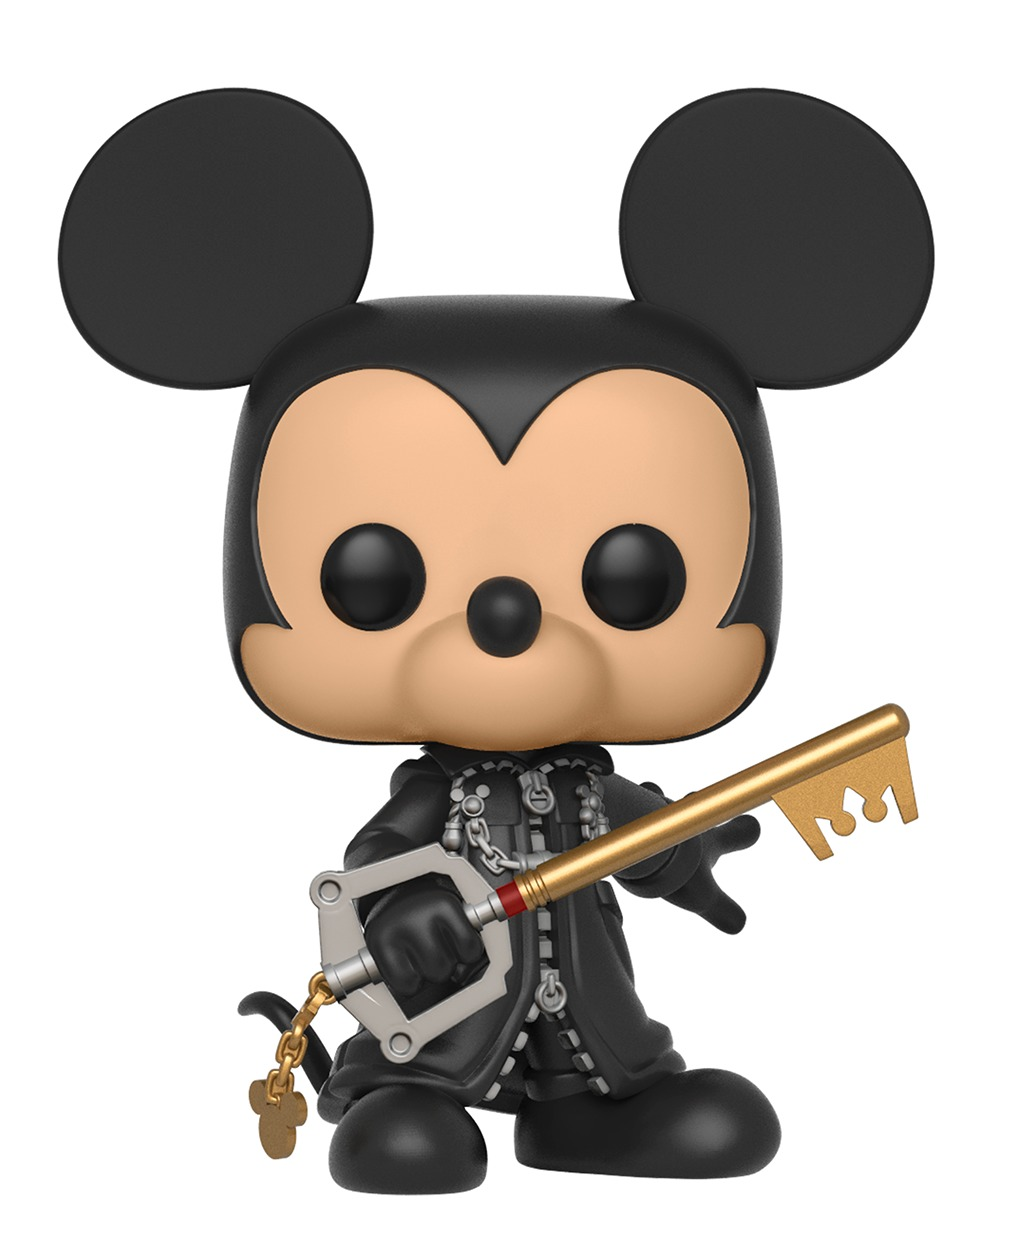 Kingdom Hearts - Mickey (Unhood) Pop! Vinyl Figure image